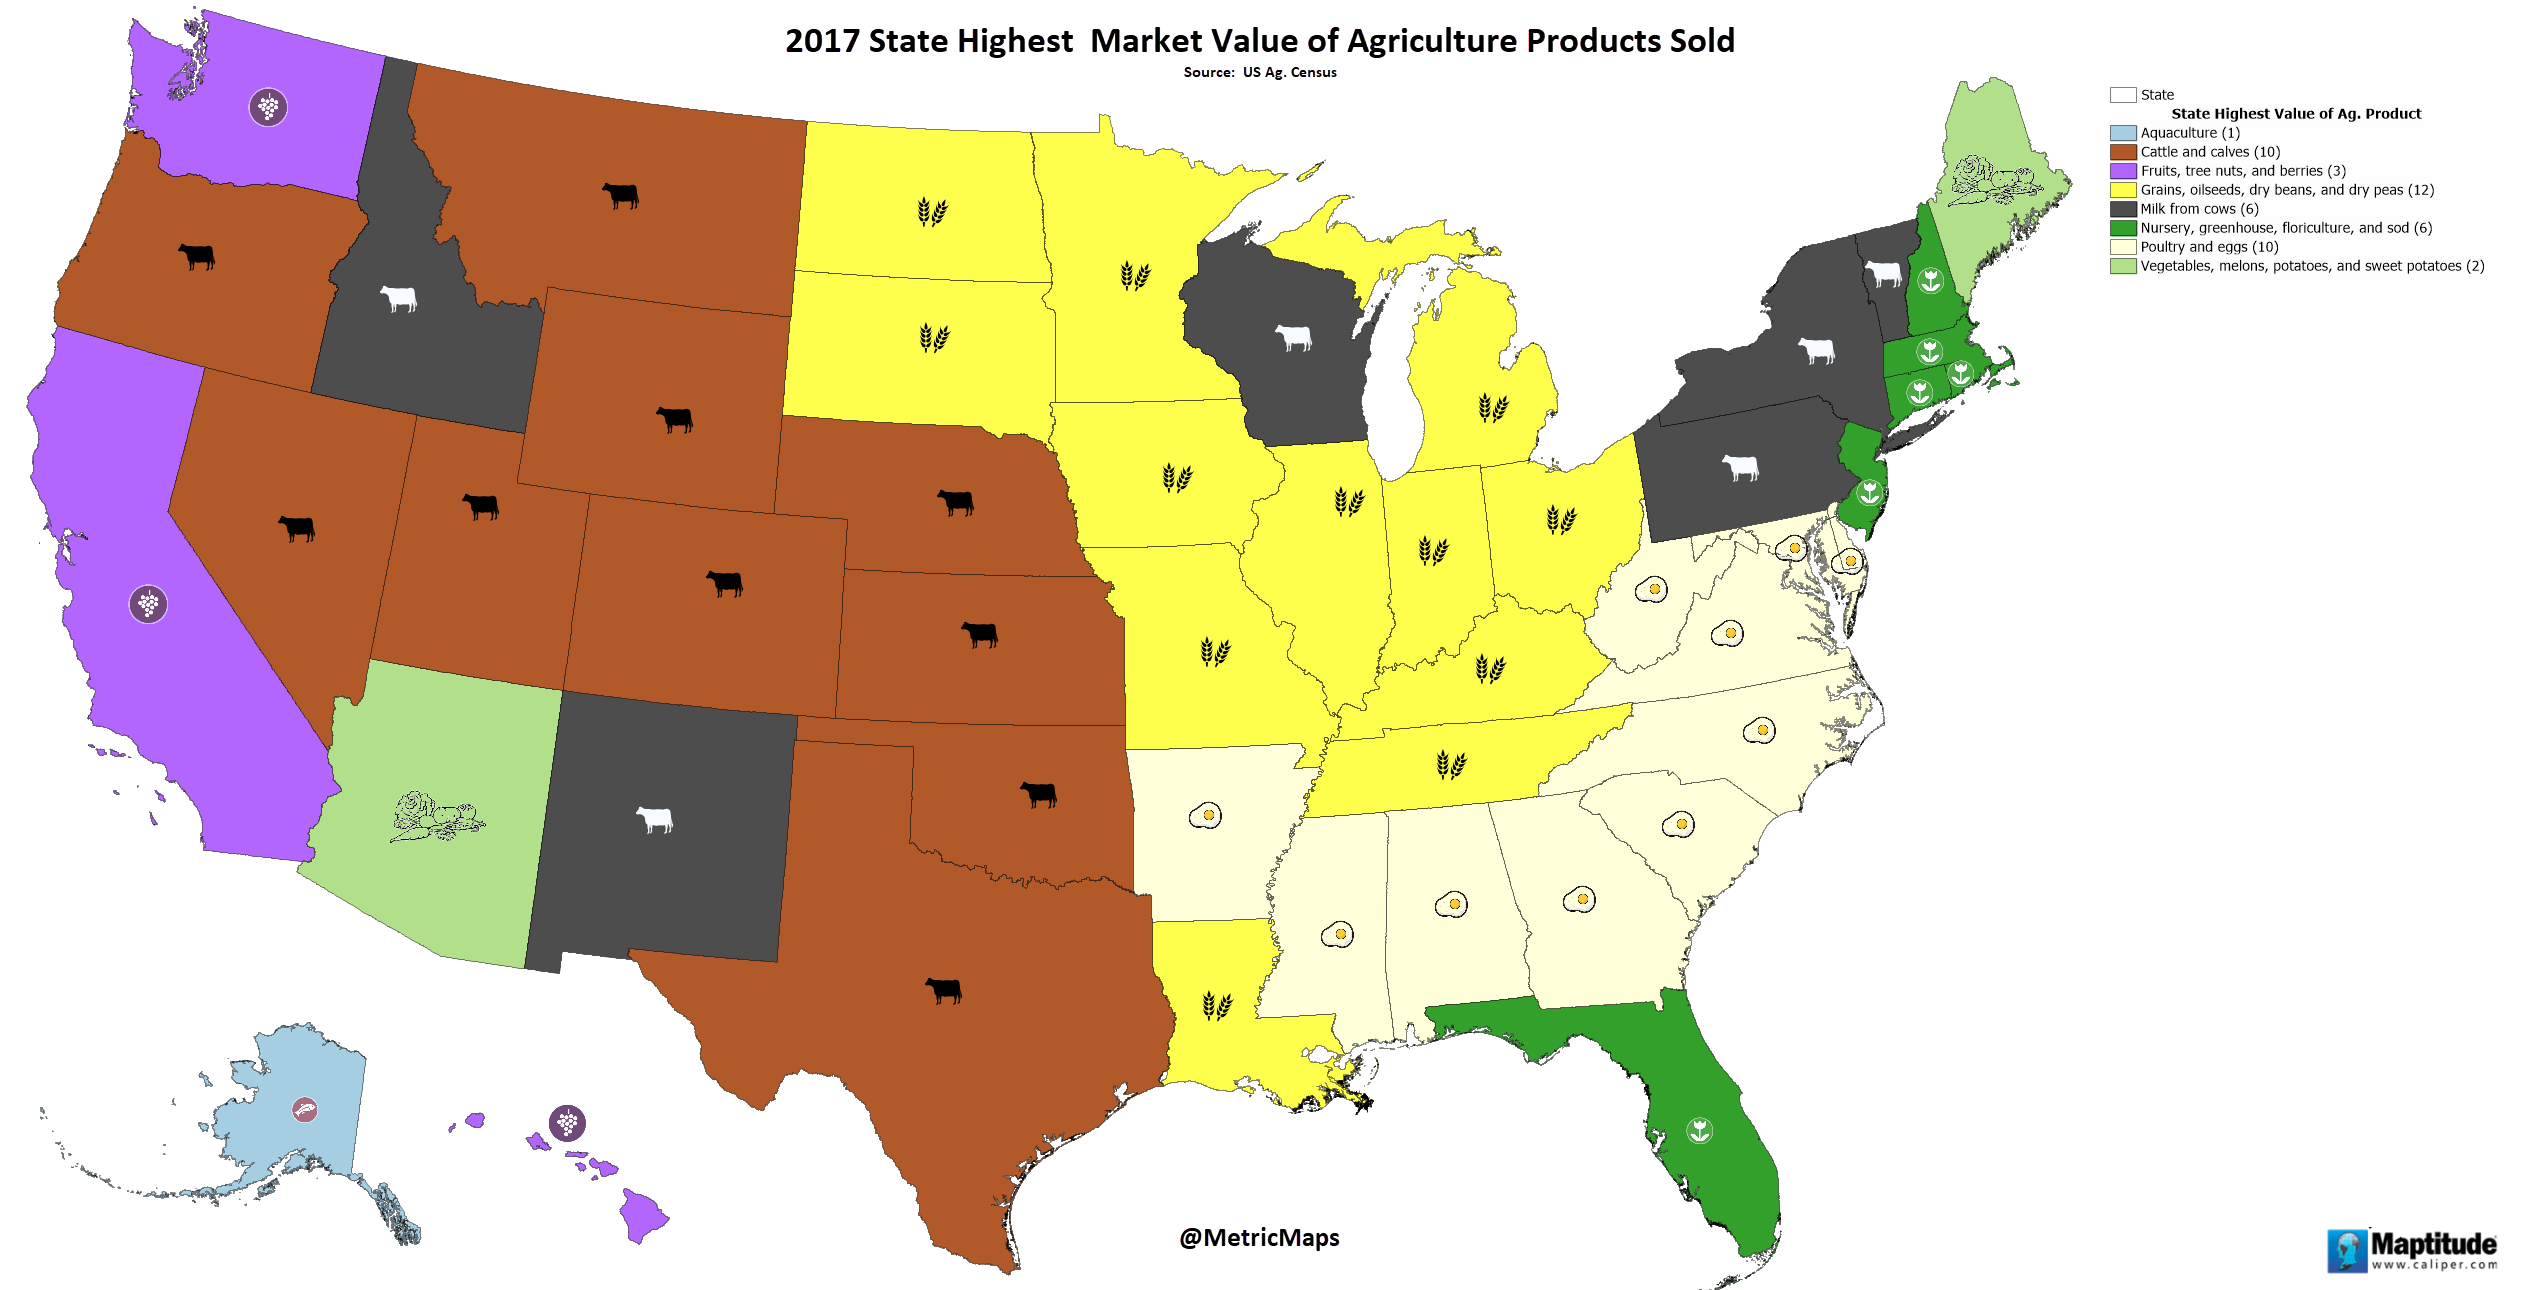 2017 State Highest Market Value of Agriculture Products